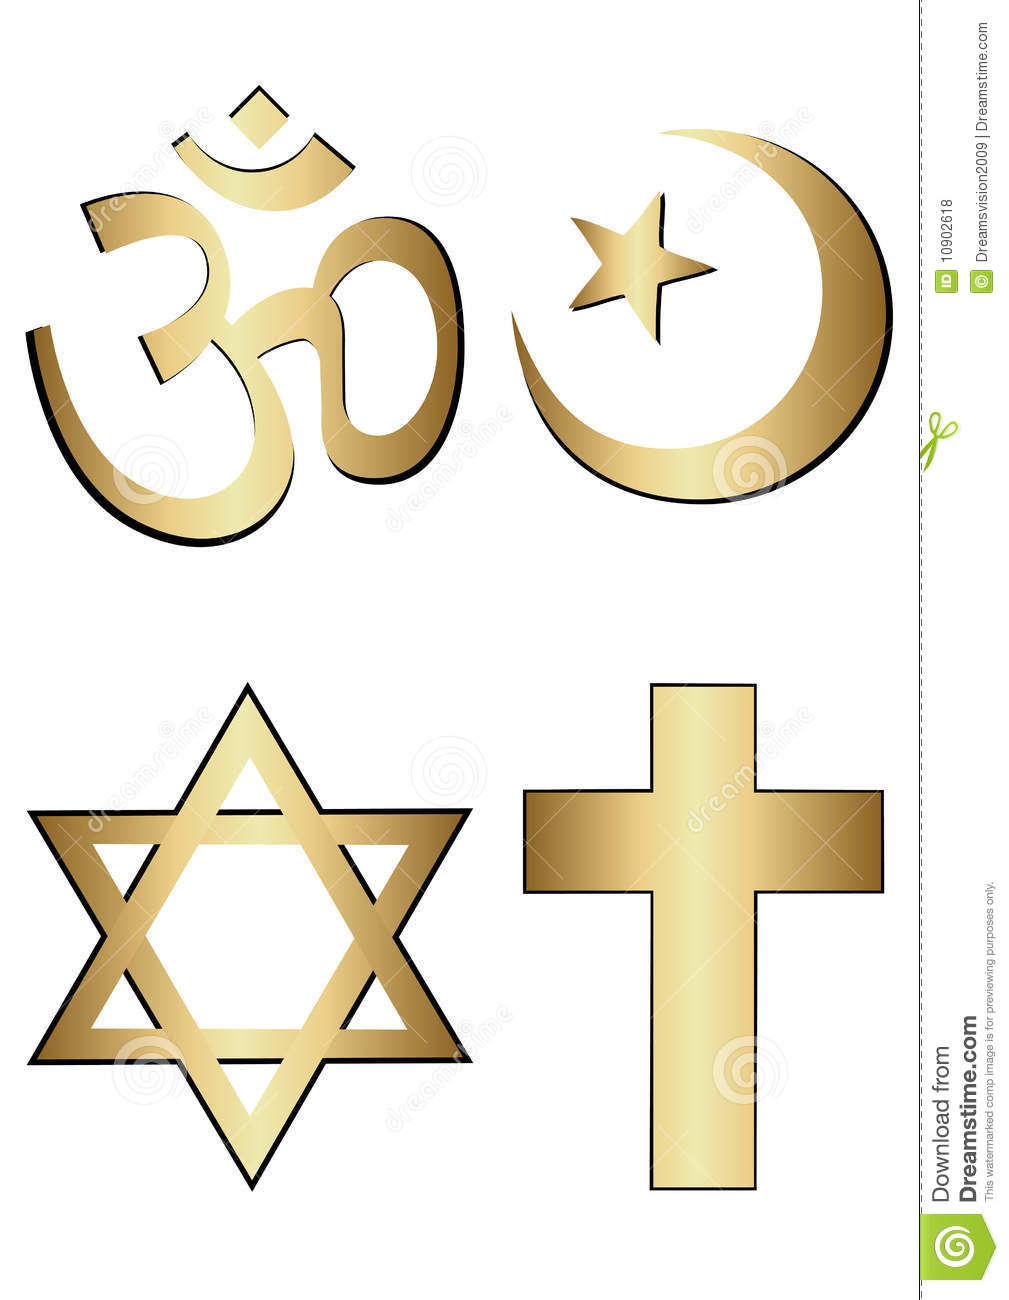 religion symbols stock vector image of elements world 10902618. Black Bedroom Furniture Sets. Home Design Ideas